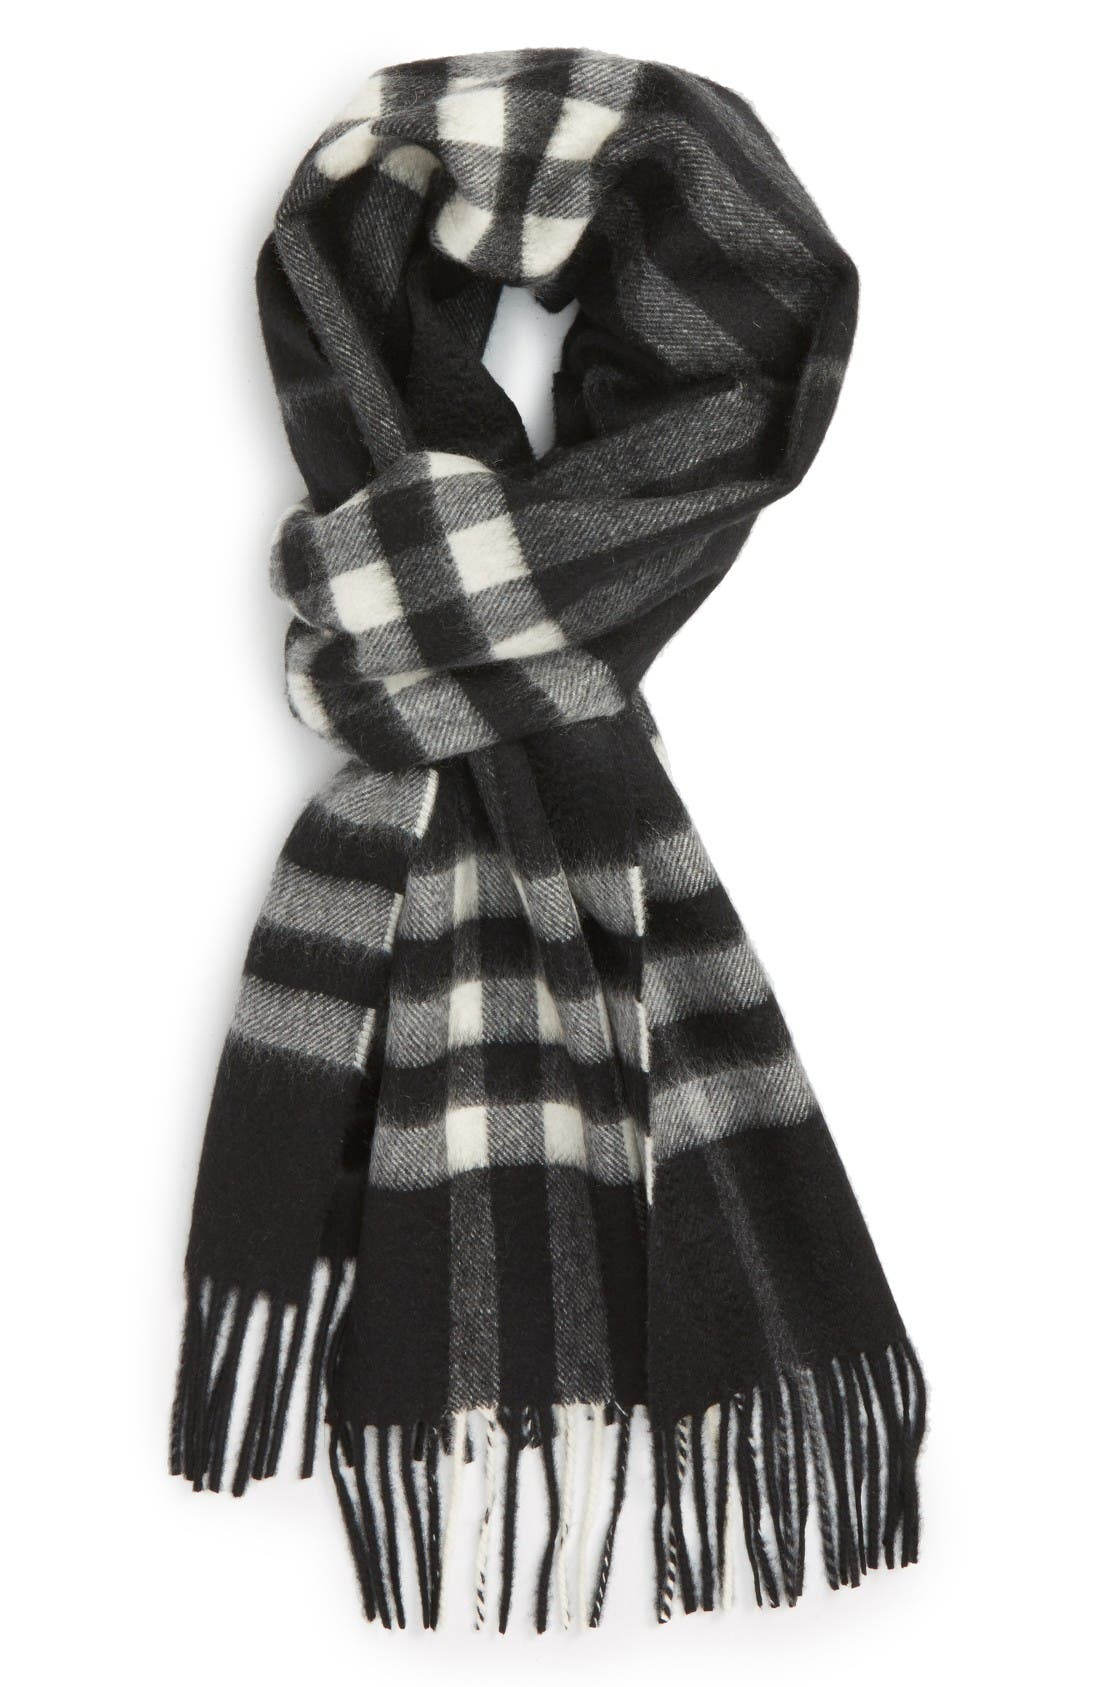 Women's Cashmere Wool Scarves - find global fashion trends by NOVICA's talented artisan designers, featuring unique Women's Cashmere Wool Scarves and trend ideas.